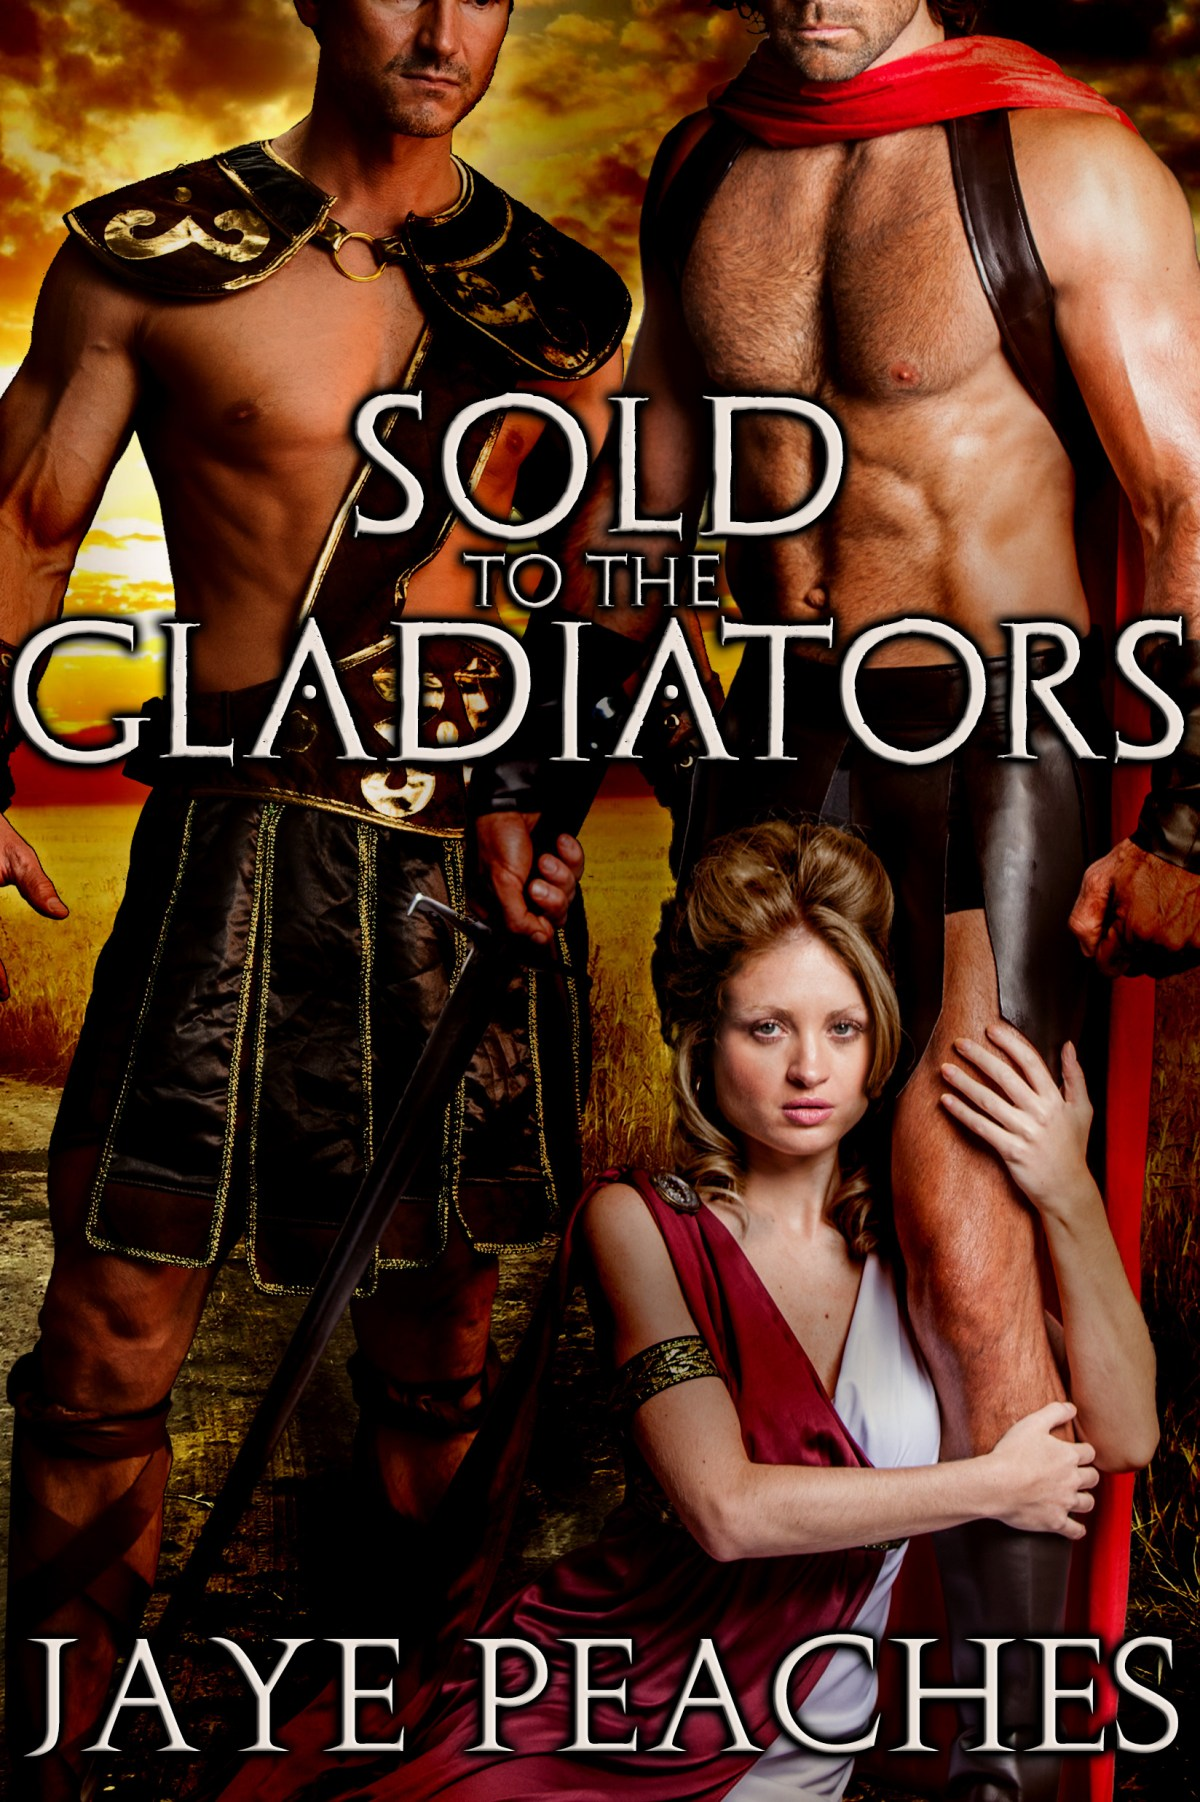 Sold to the Gladiators by Jaye Peaches